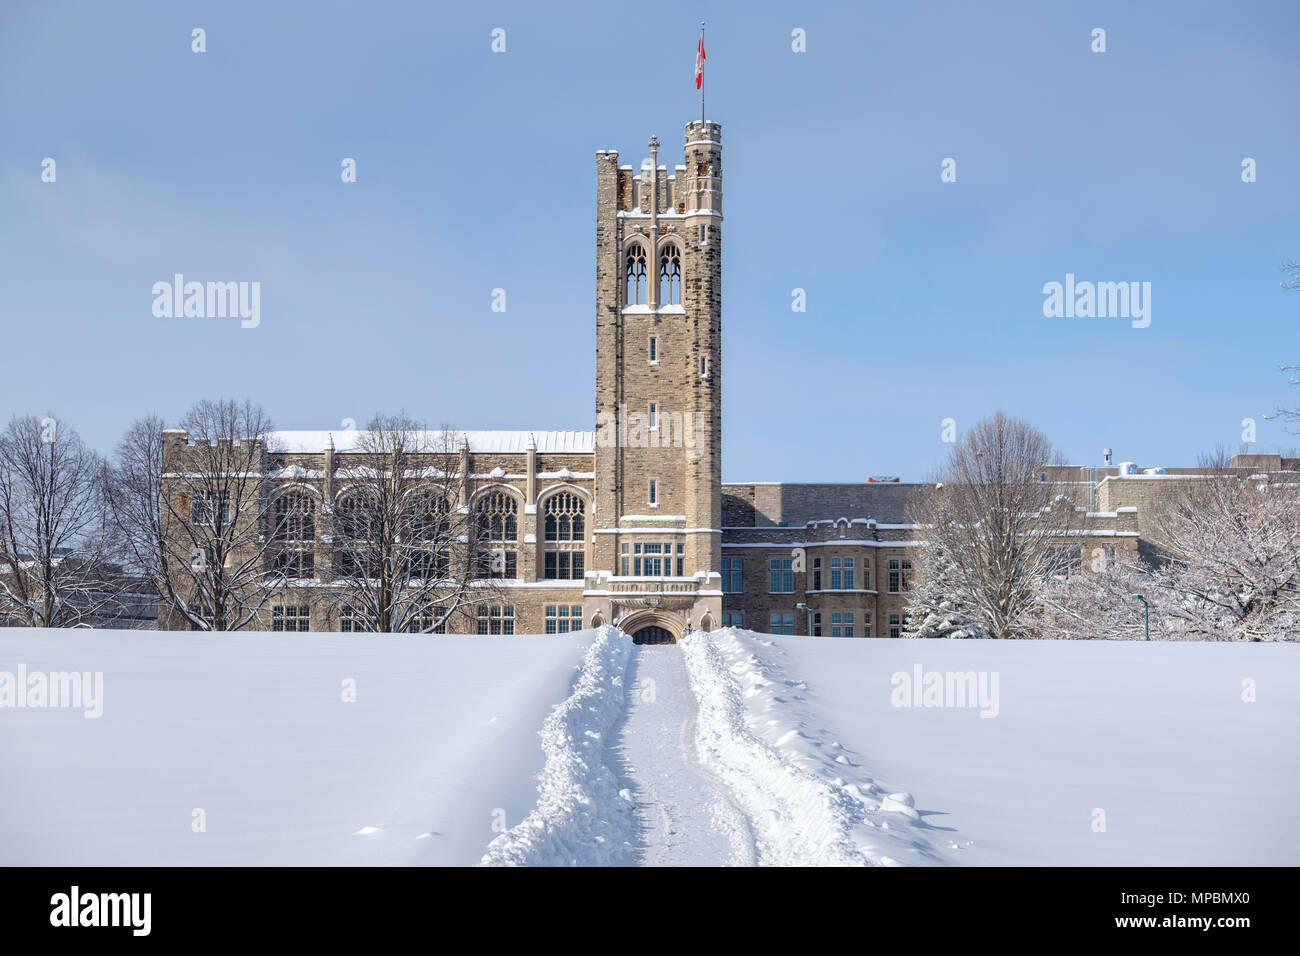 Western University Canada >> University College Building At Western University After A